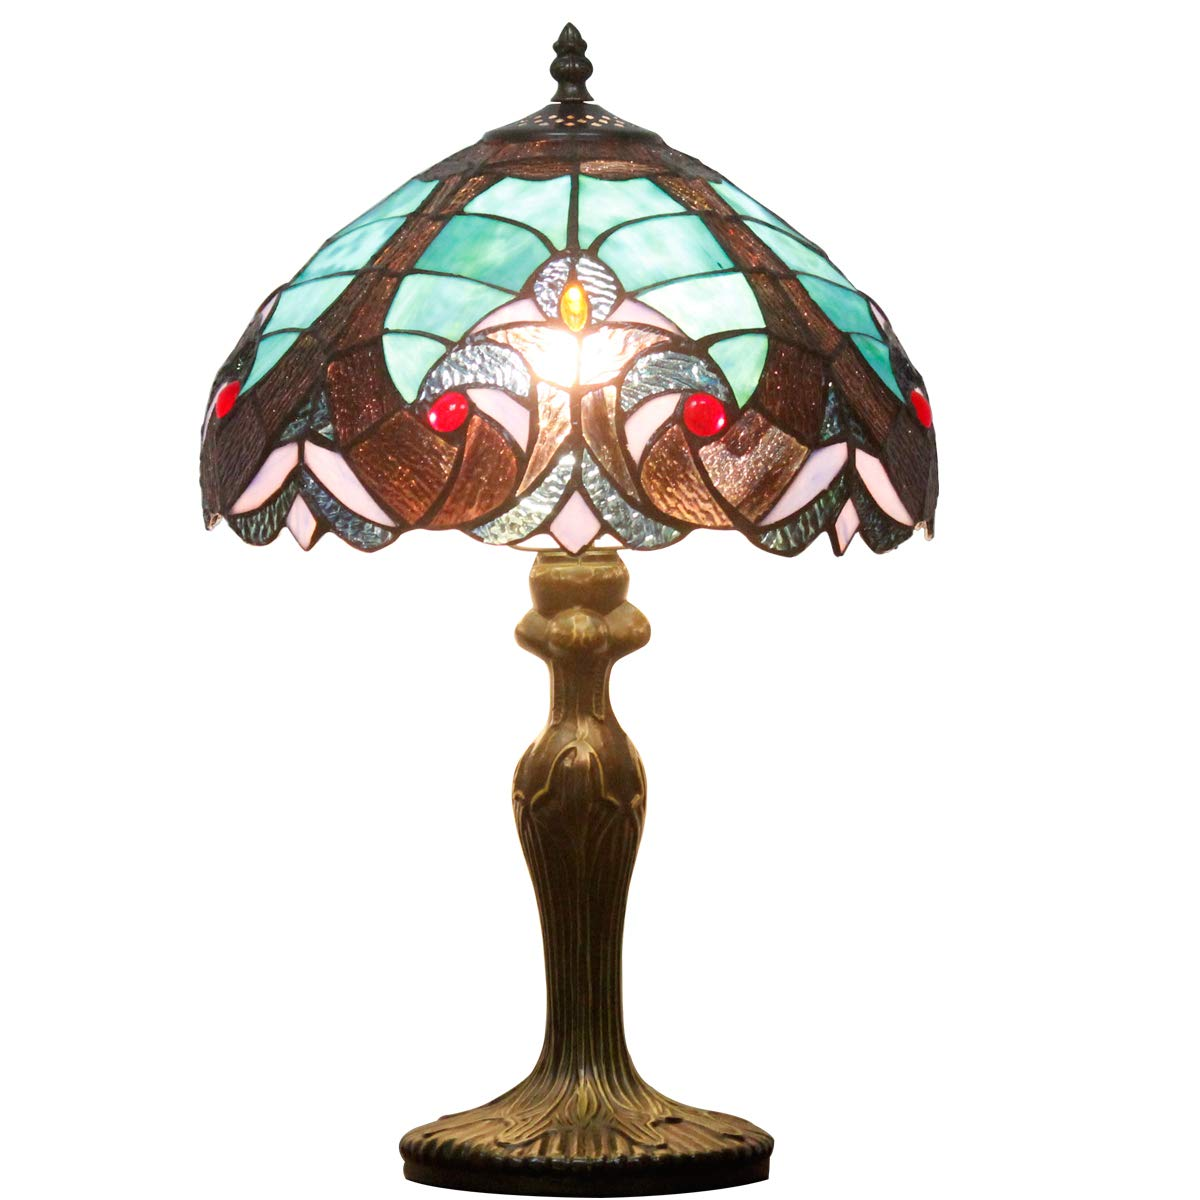 Tiffany style table lamp light S160G series 18 inch tall green LIAISON shade E26